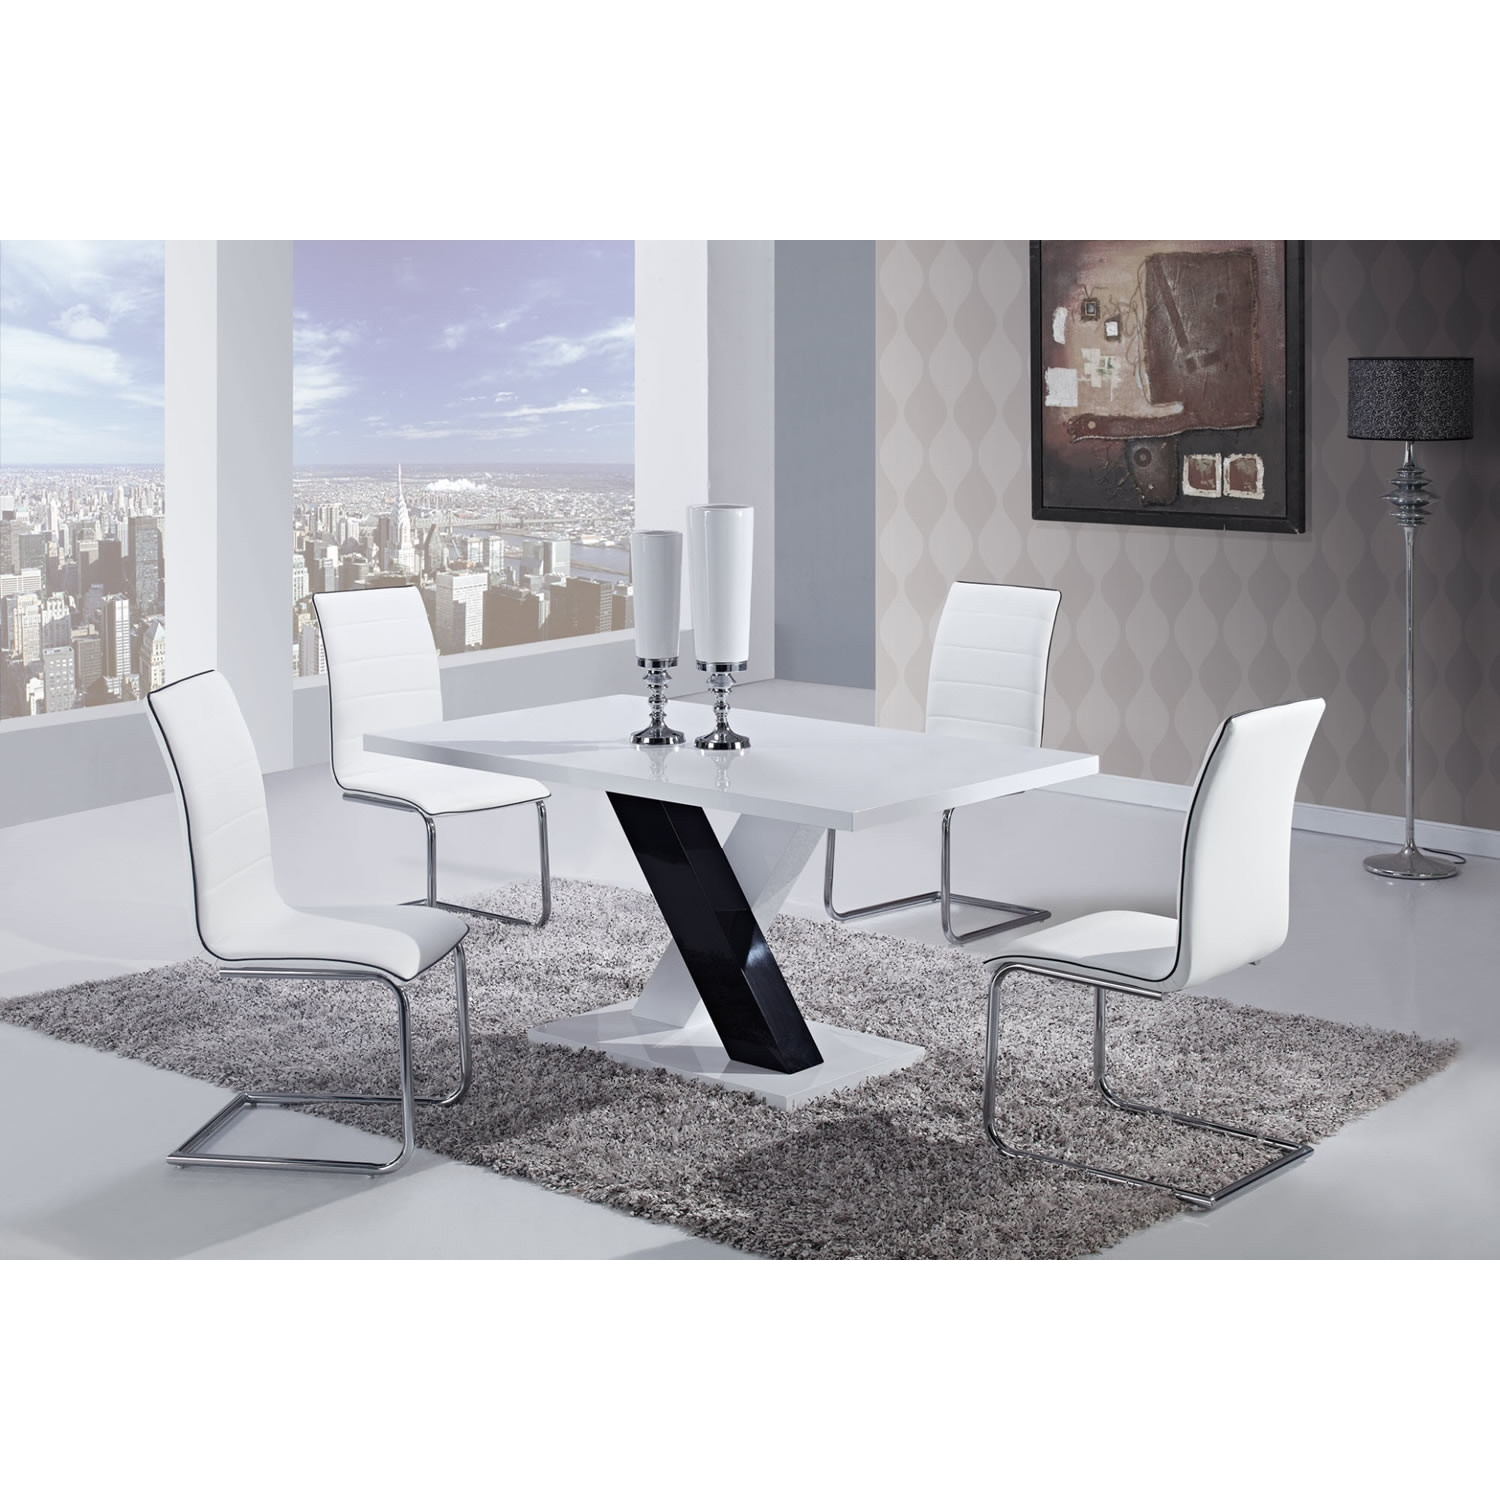 Dining Table - High Gloss White Top, Black and White Legs